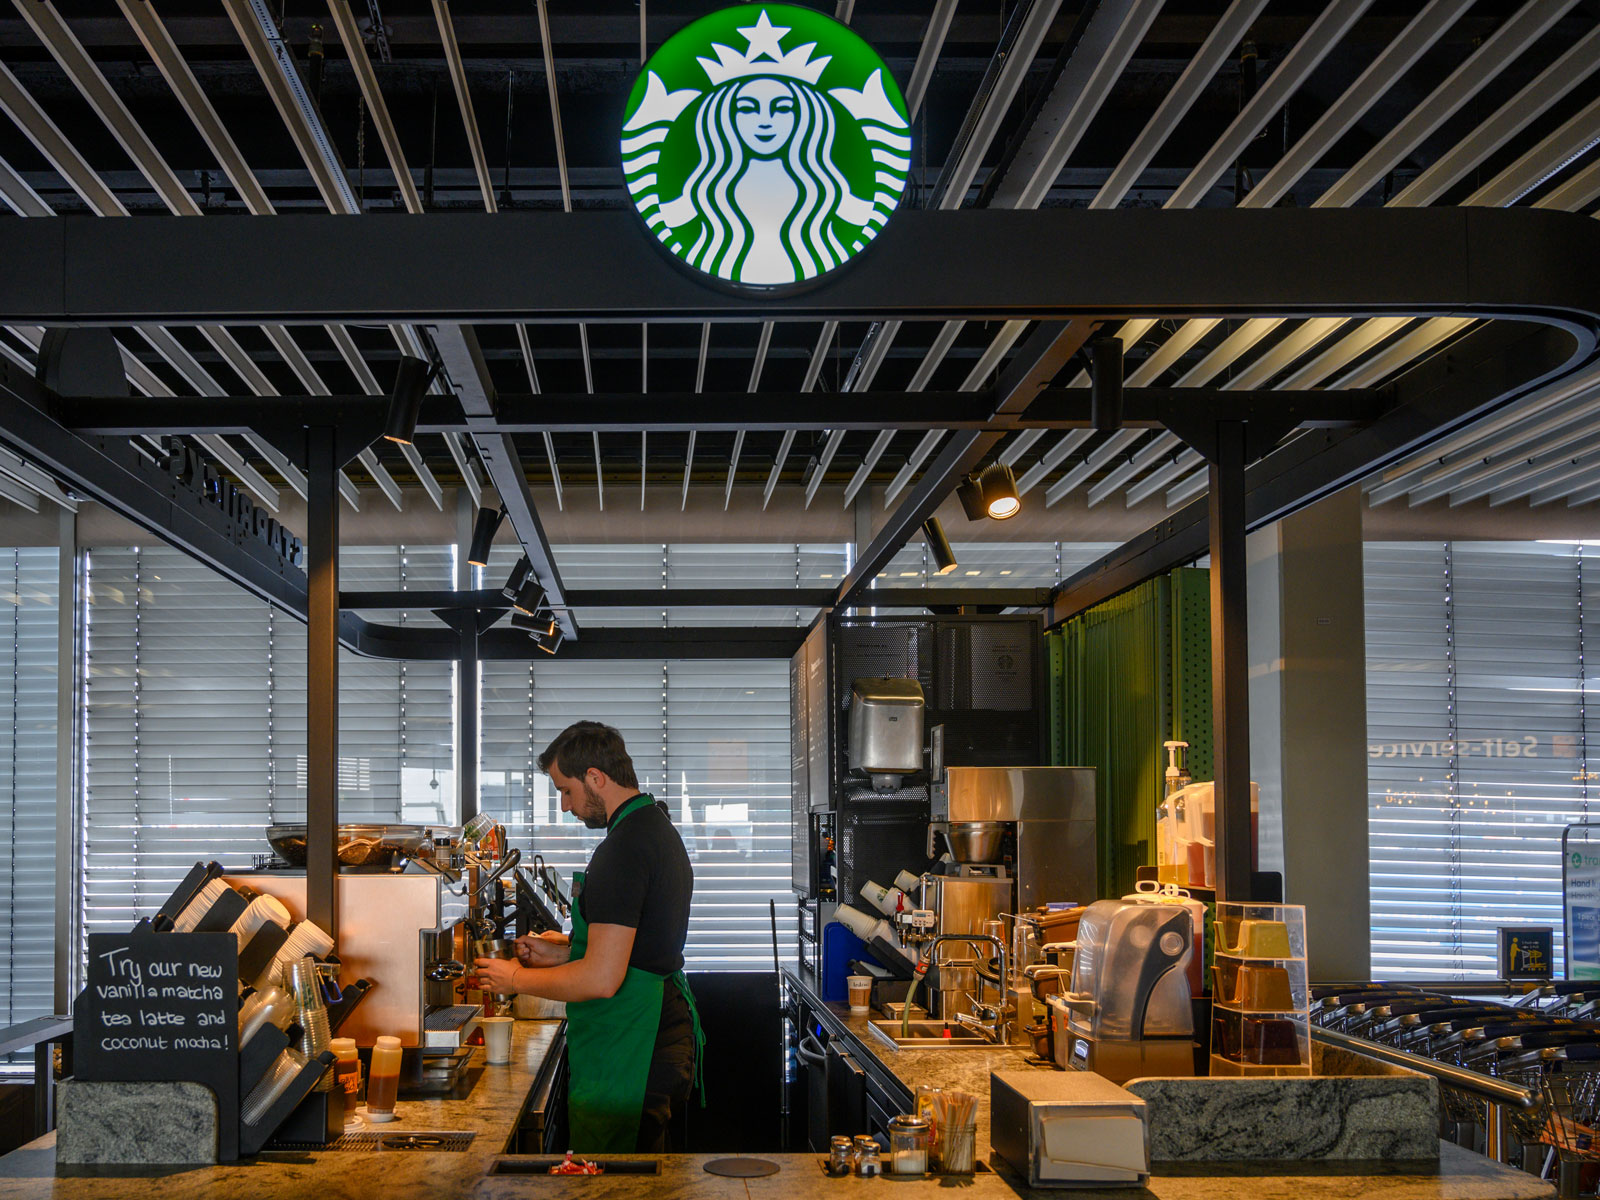 Starbucks' Revamped Rewards Program: What's New and What Items You Can Redeem Stars For